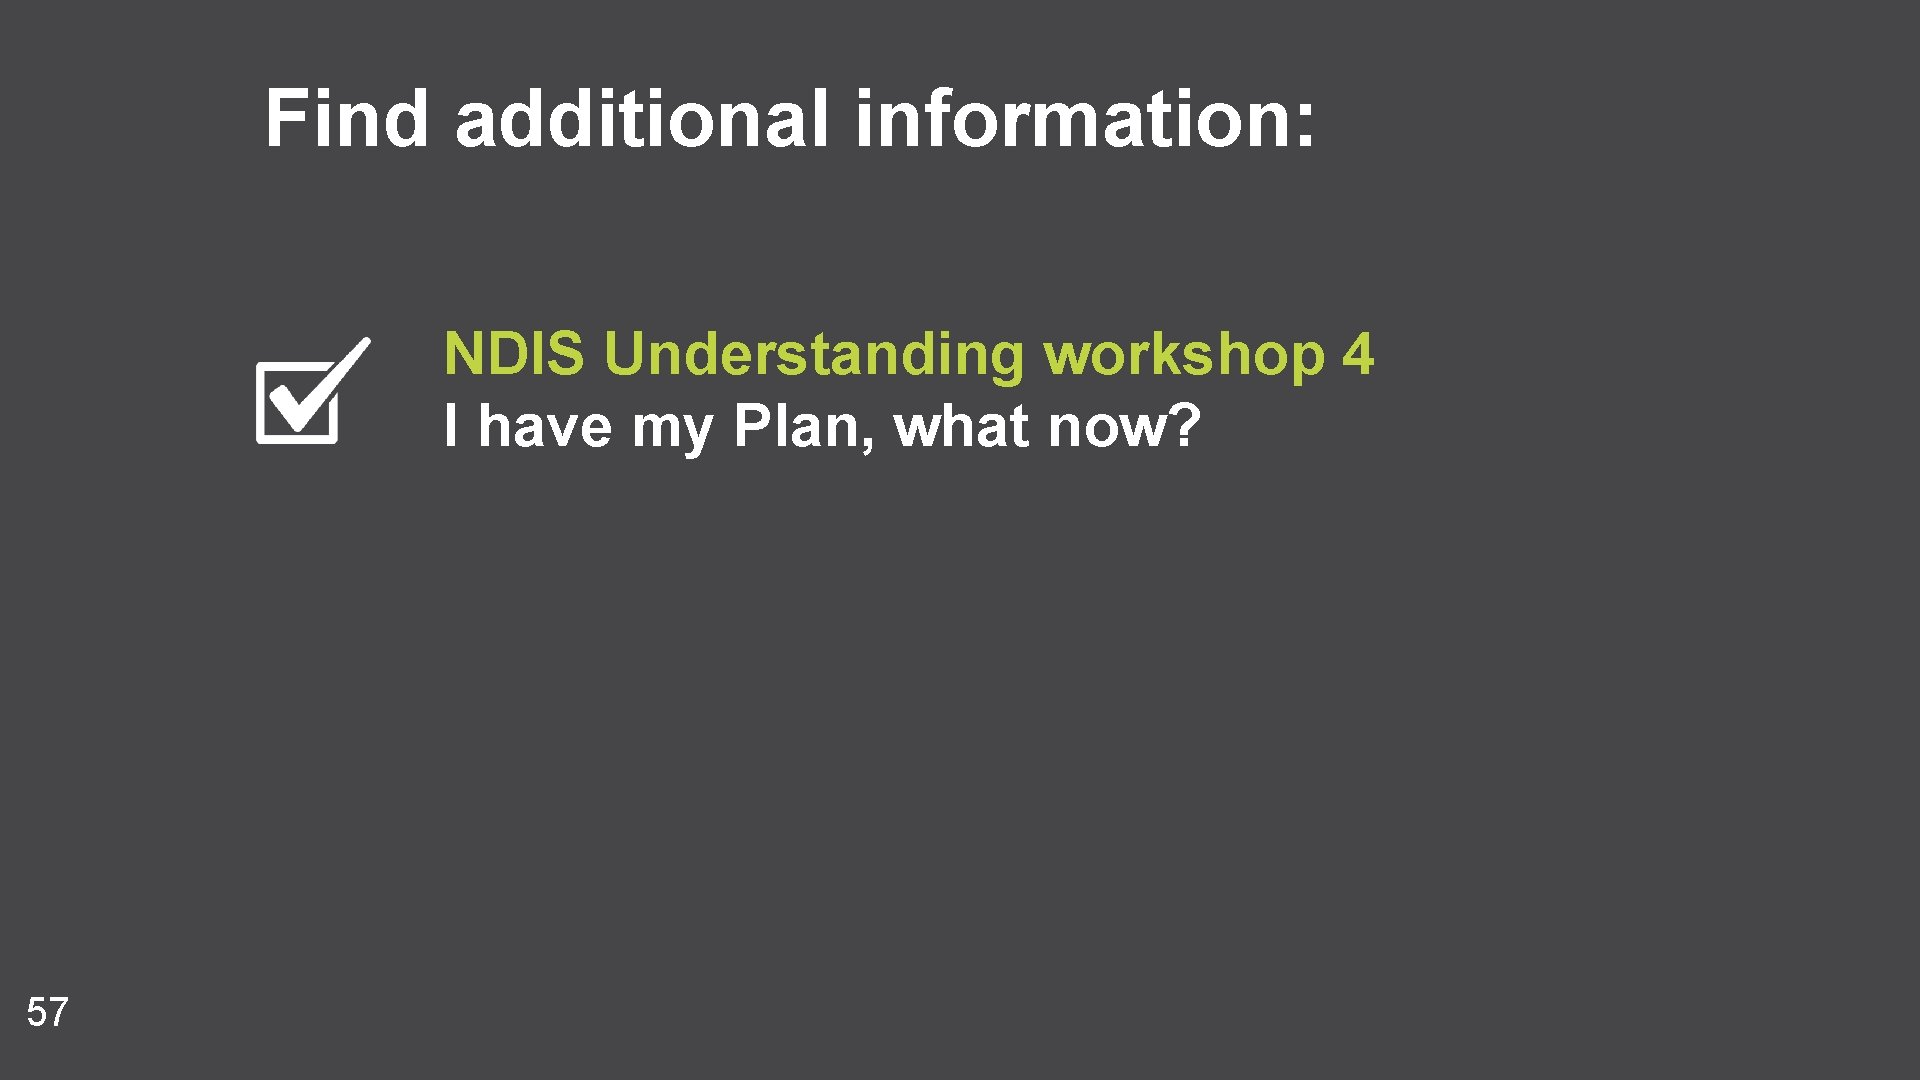 Find additional information: NDIS Understanding workshop 4 I have my Plan, what now? 57